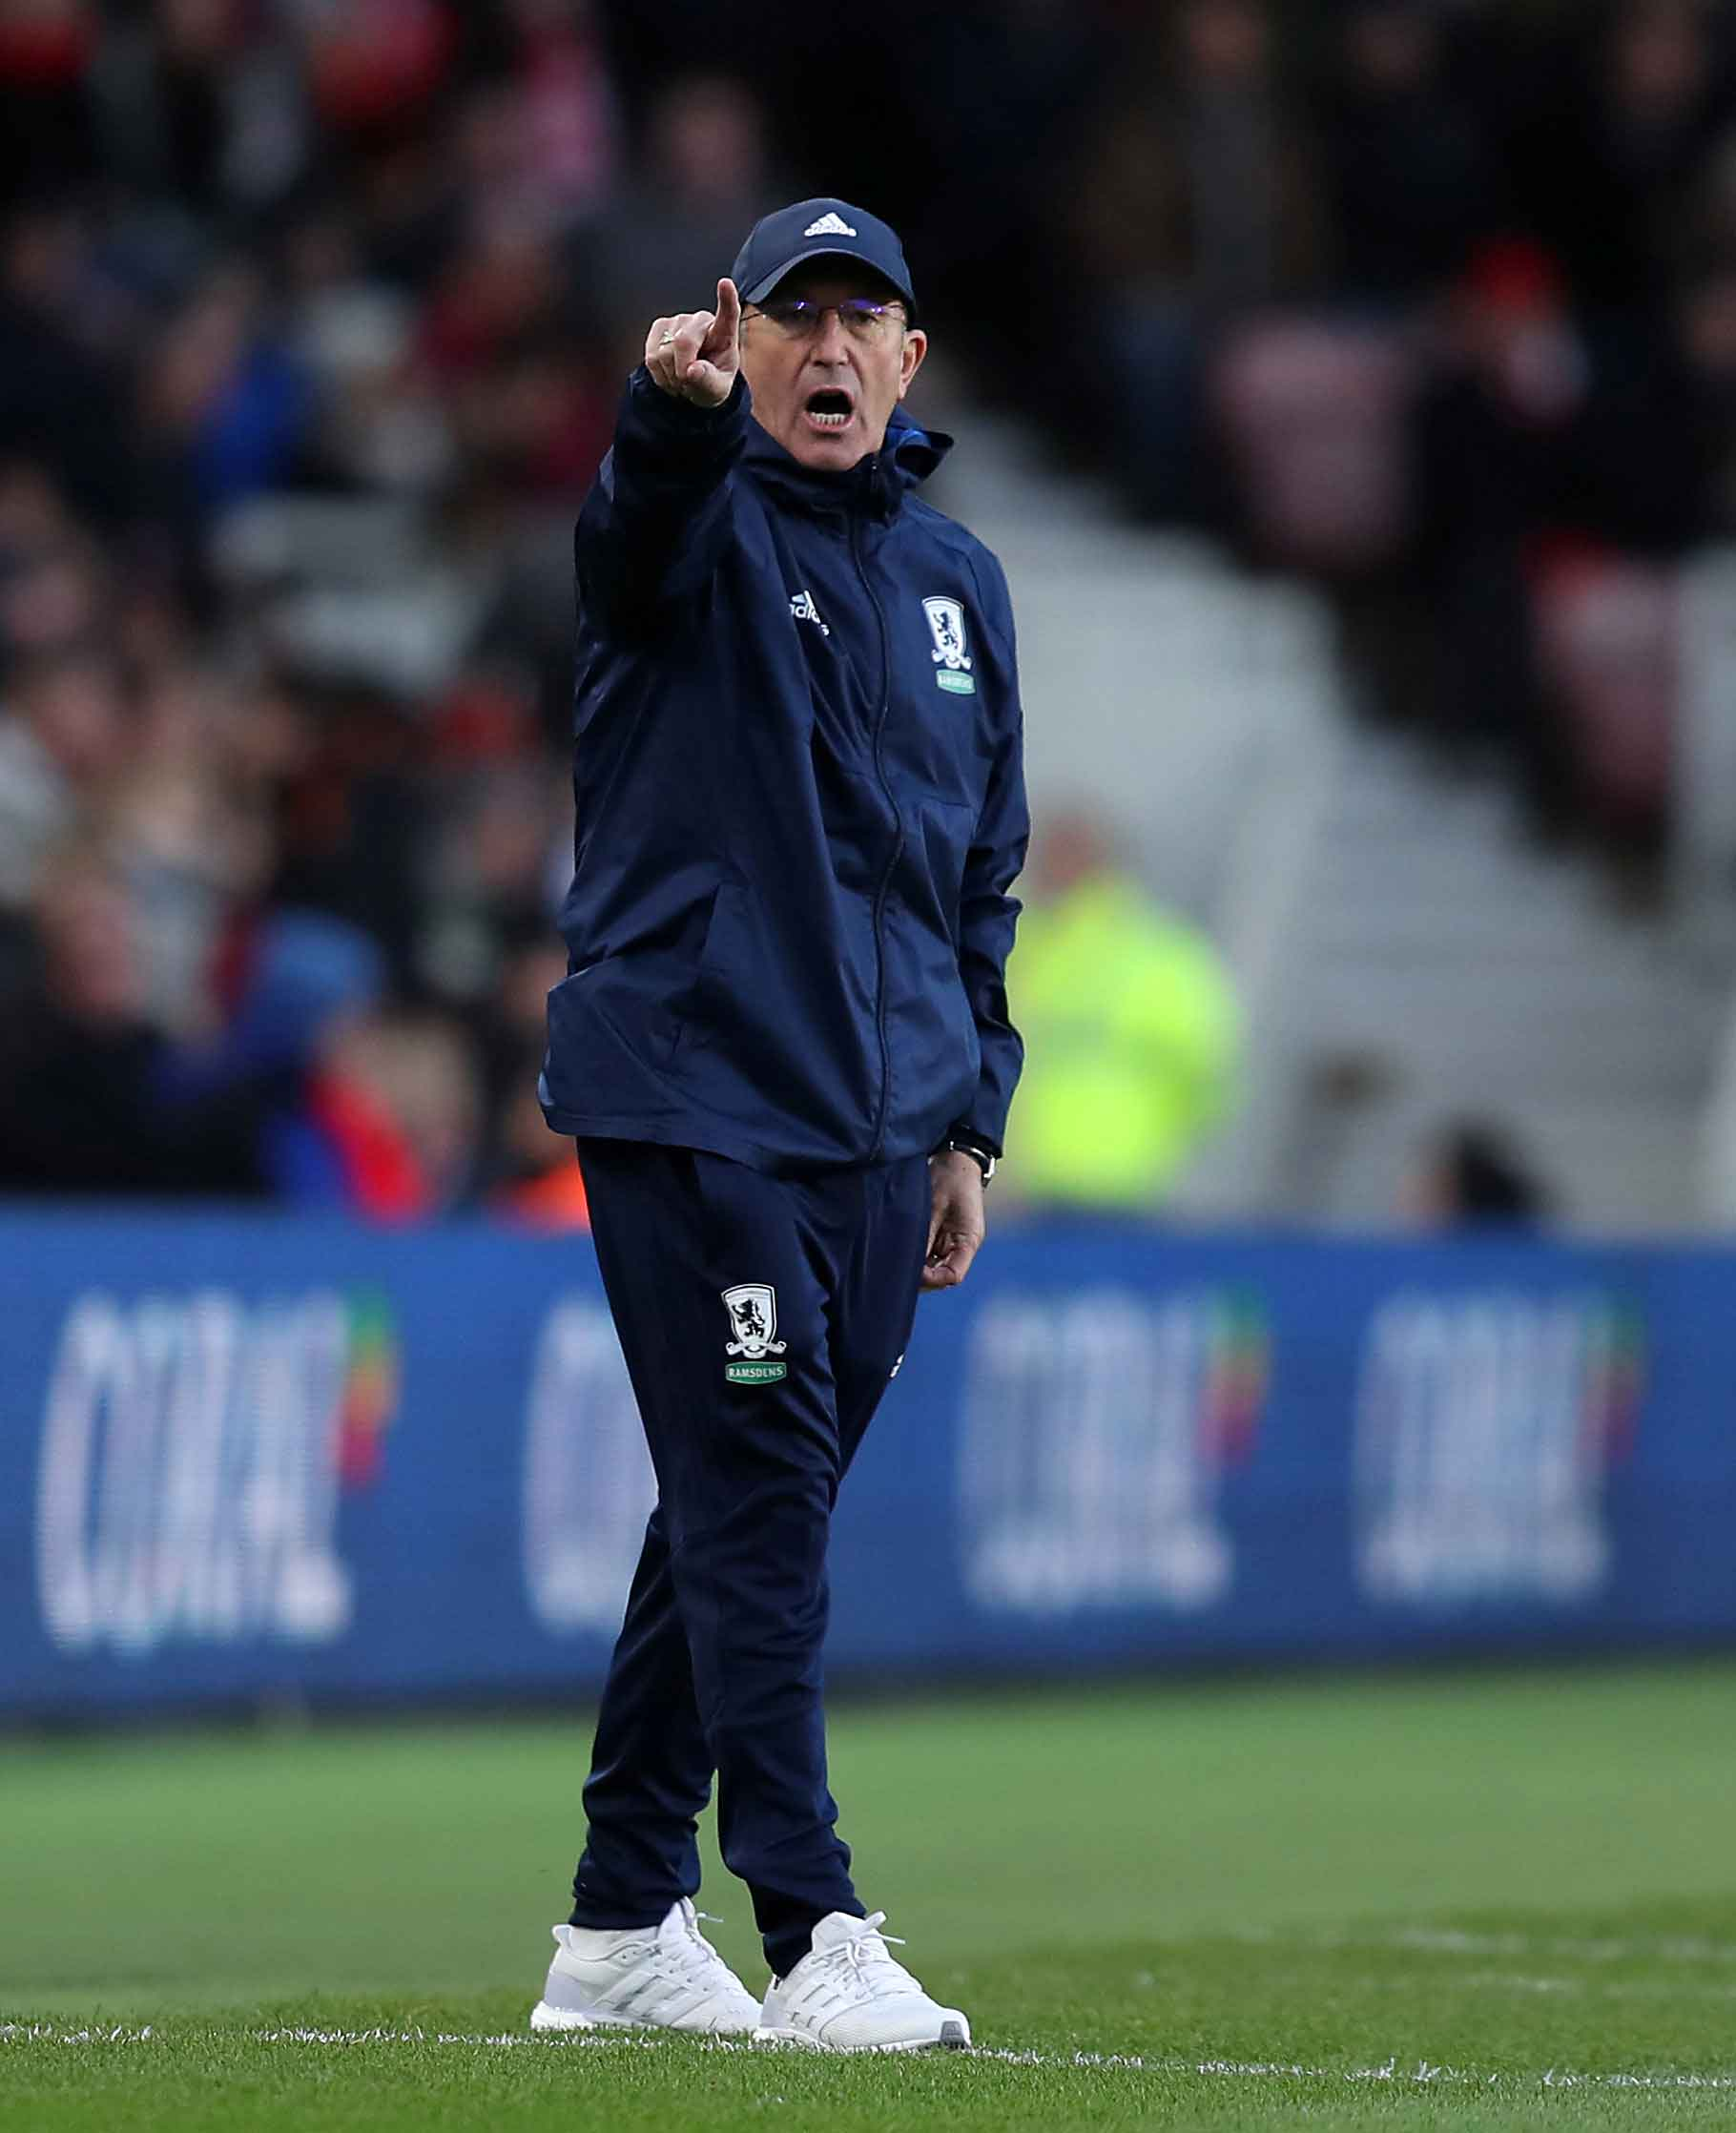 Tony Pulis Starting To Show Why He Was Brought To Boro